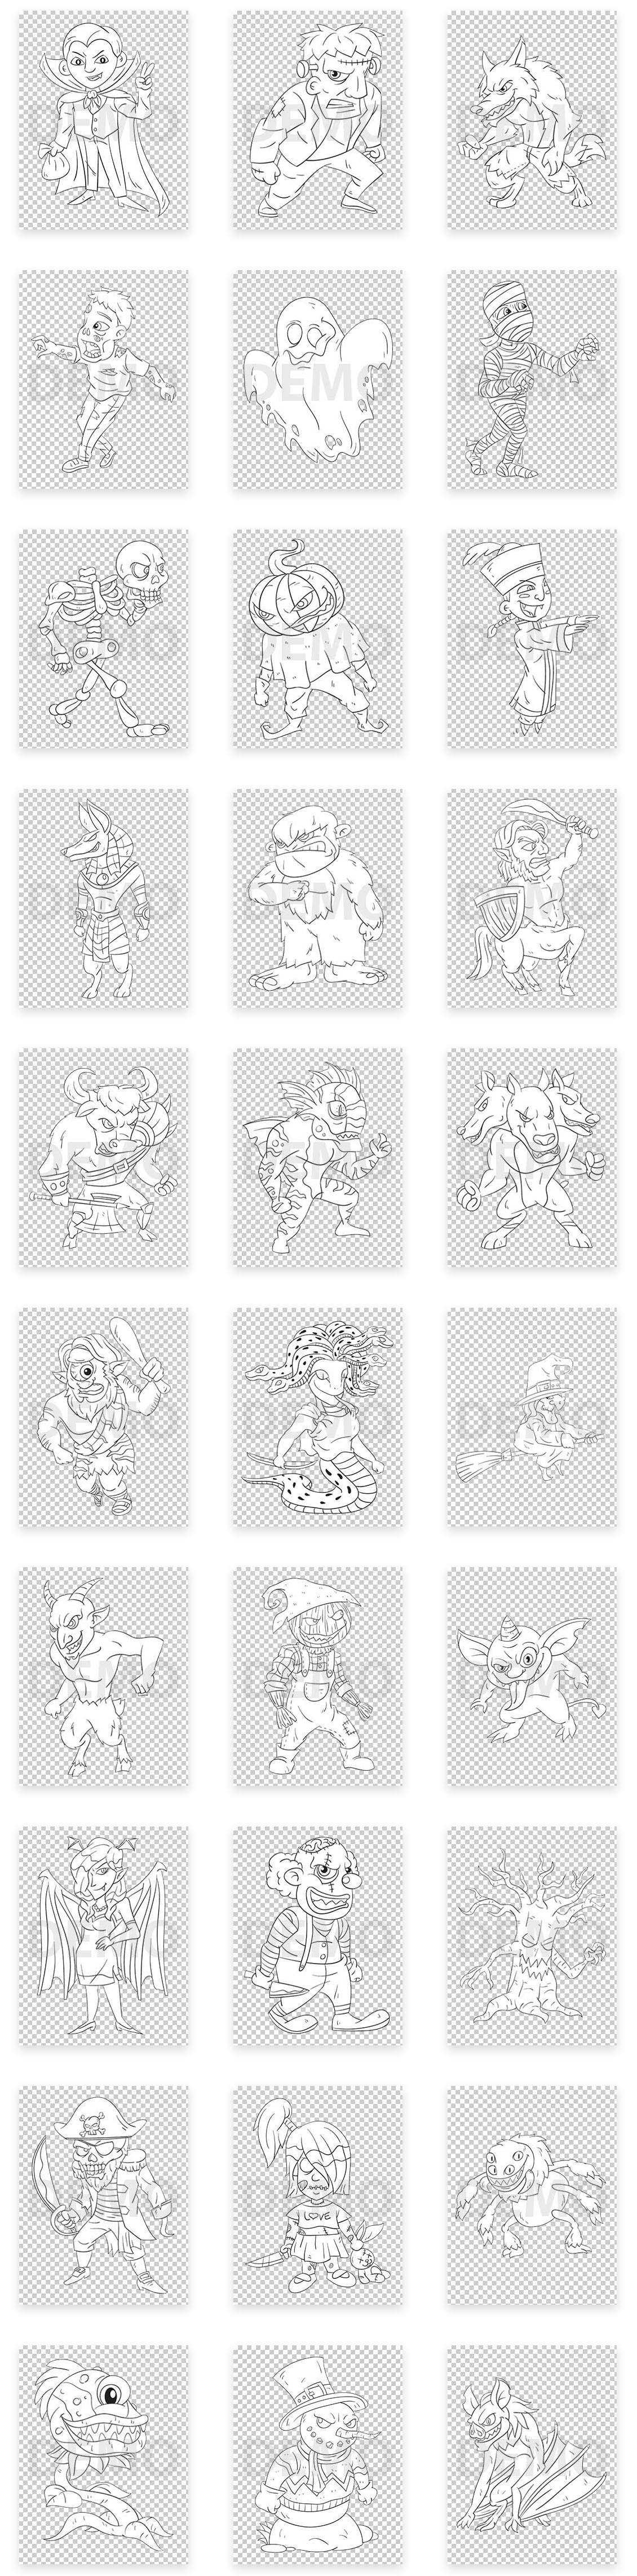 Happy-Halloween-Coloring-Pack-feature-4